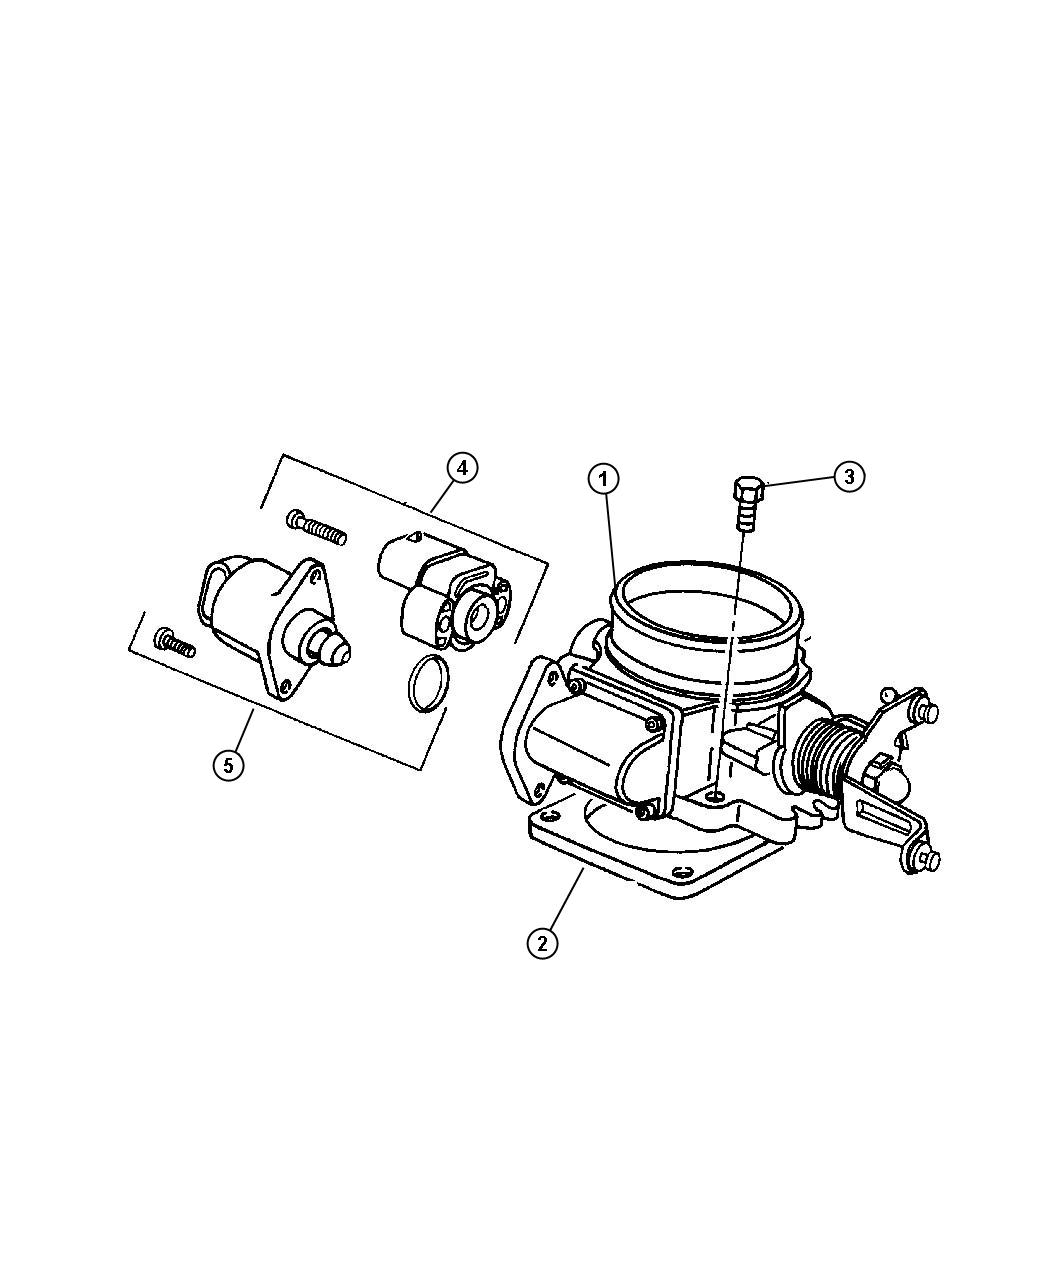 jeep liberty motor  a i s   air idle speed  throttle  body  engine